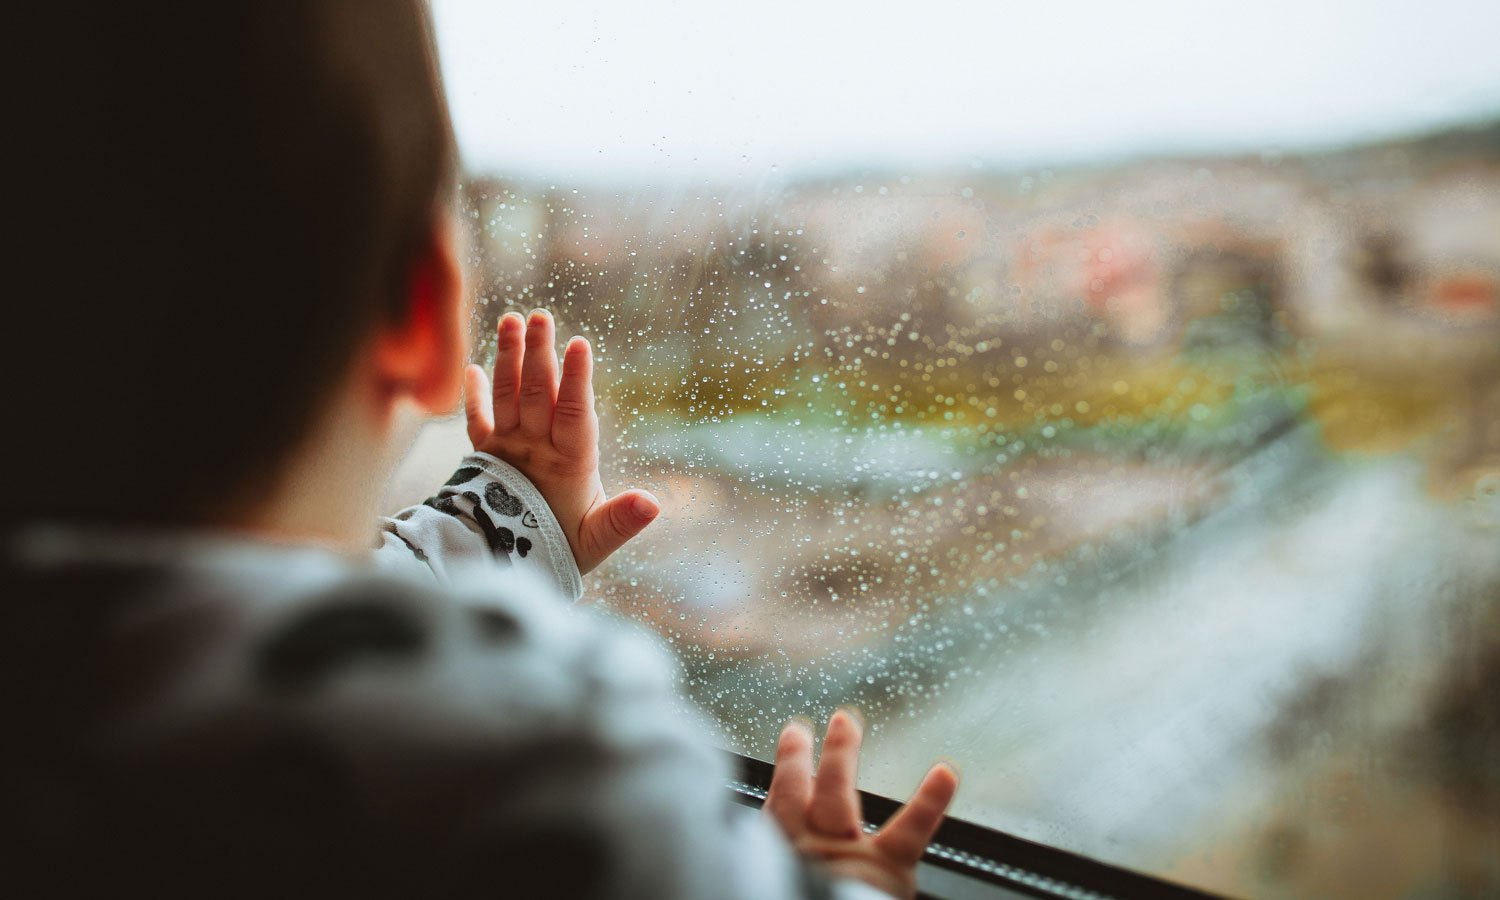 A baby touching a rain-drenched window.